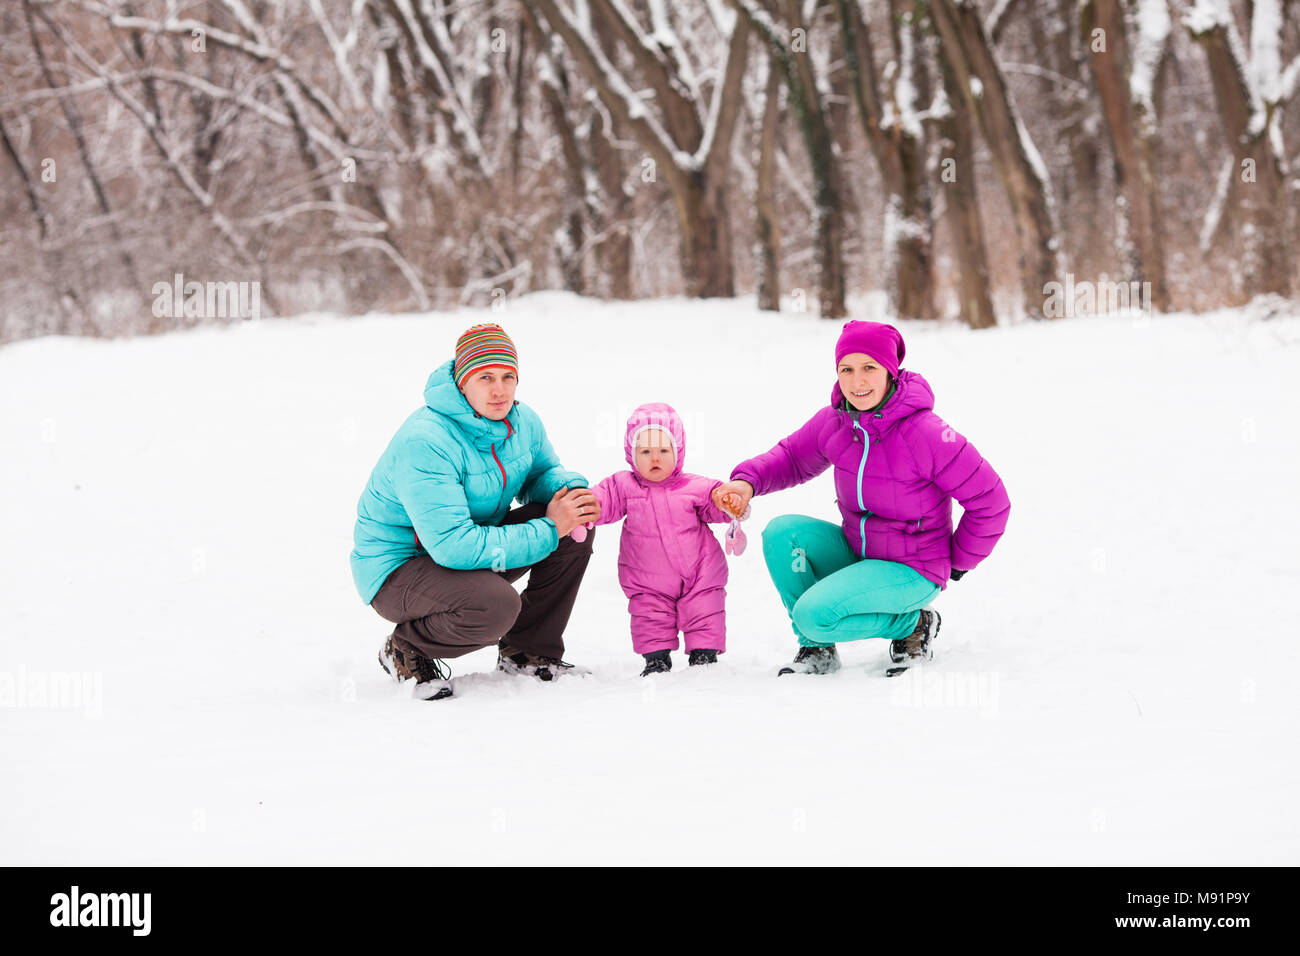 Family in the winter forest - Stock Image